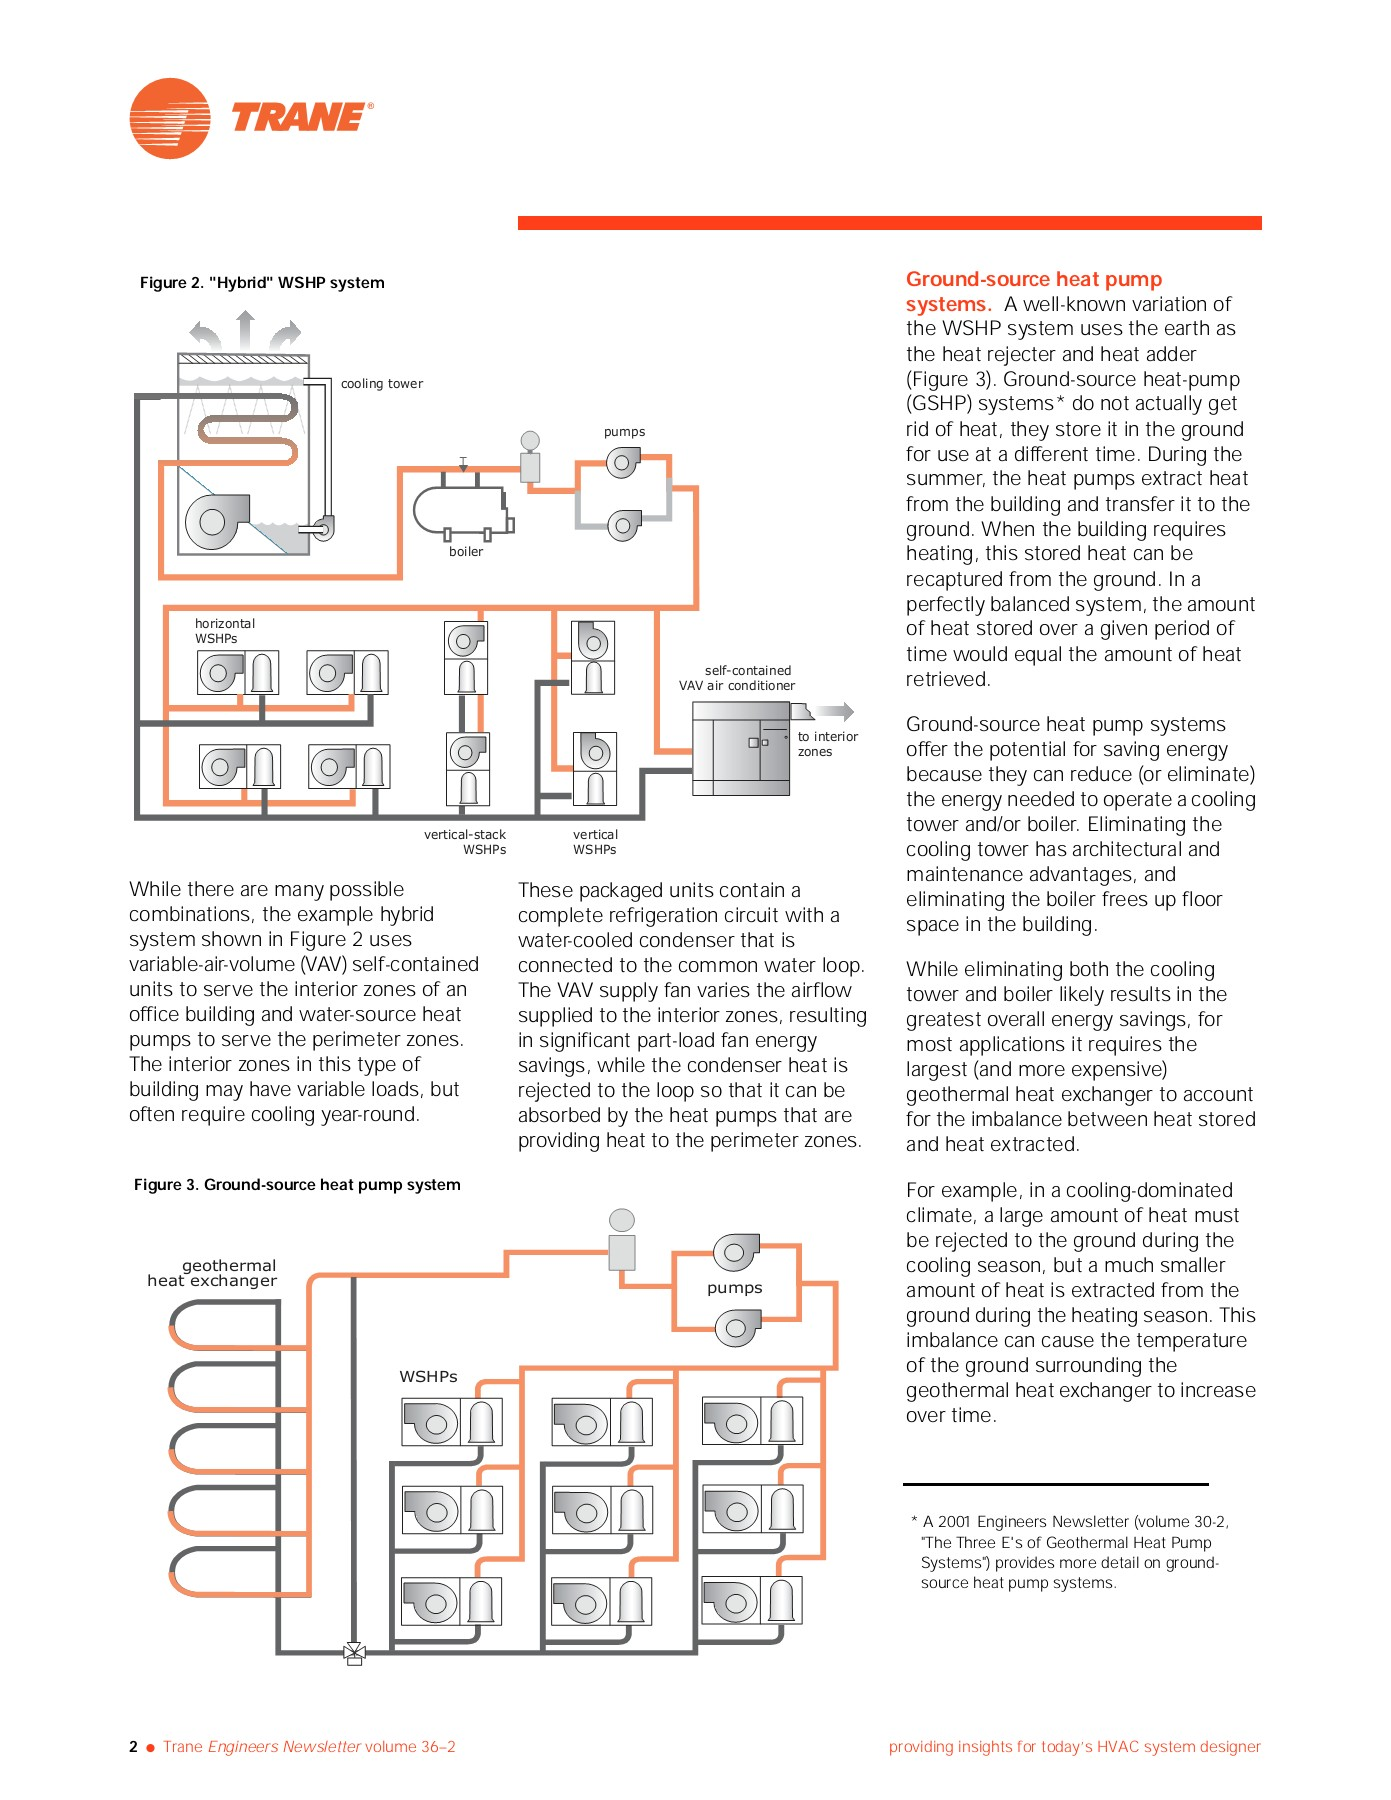 Energy-Saving Strategies for Water-Source Heat-Pump Systems